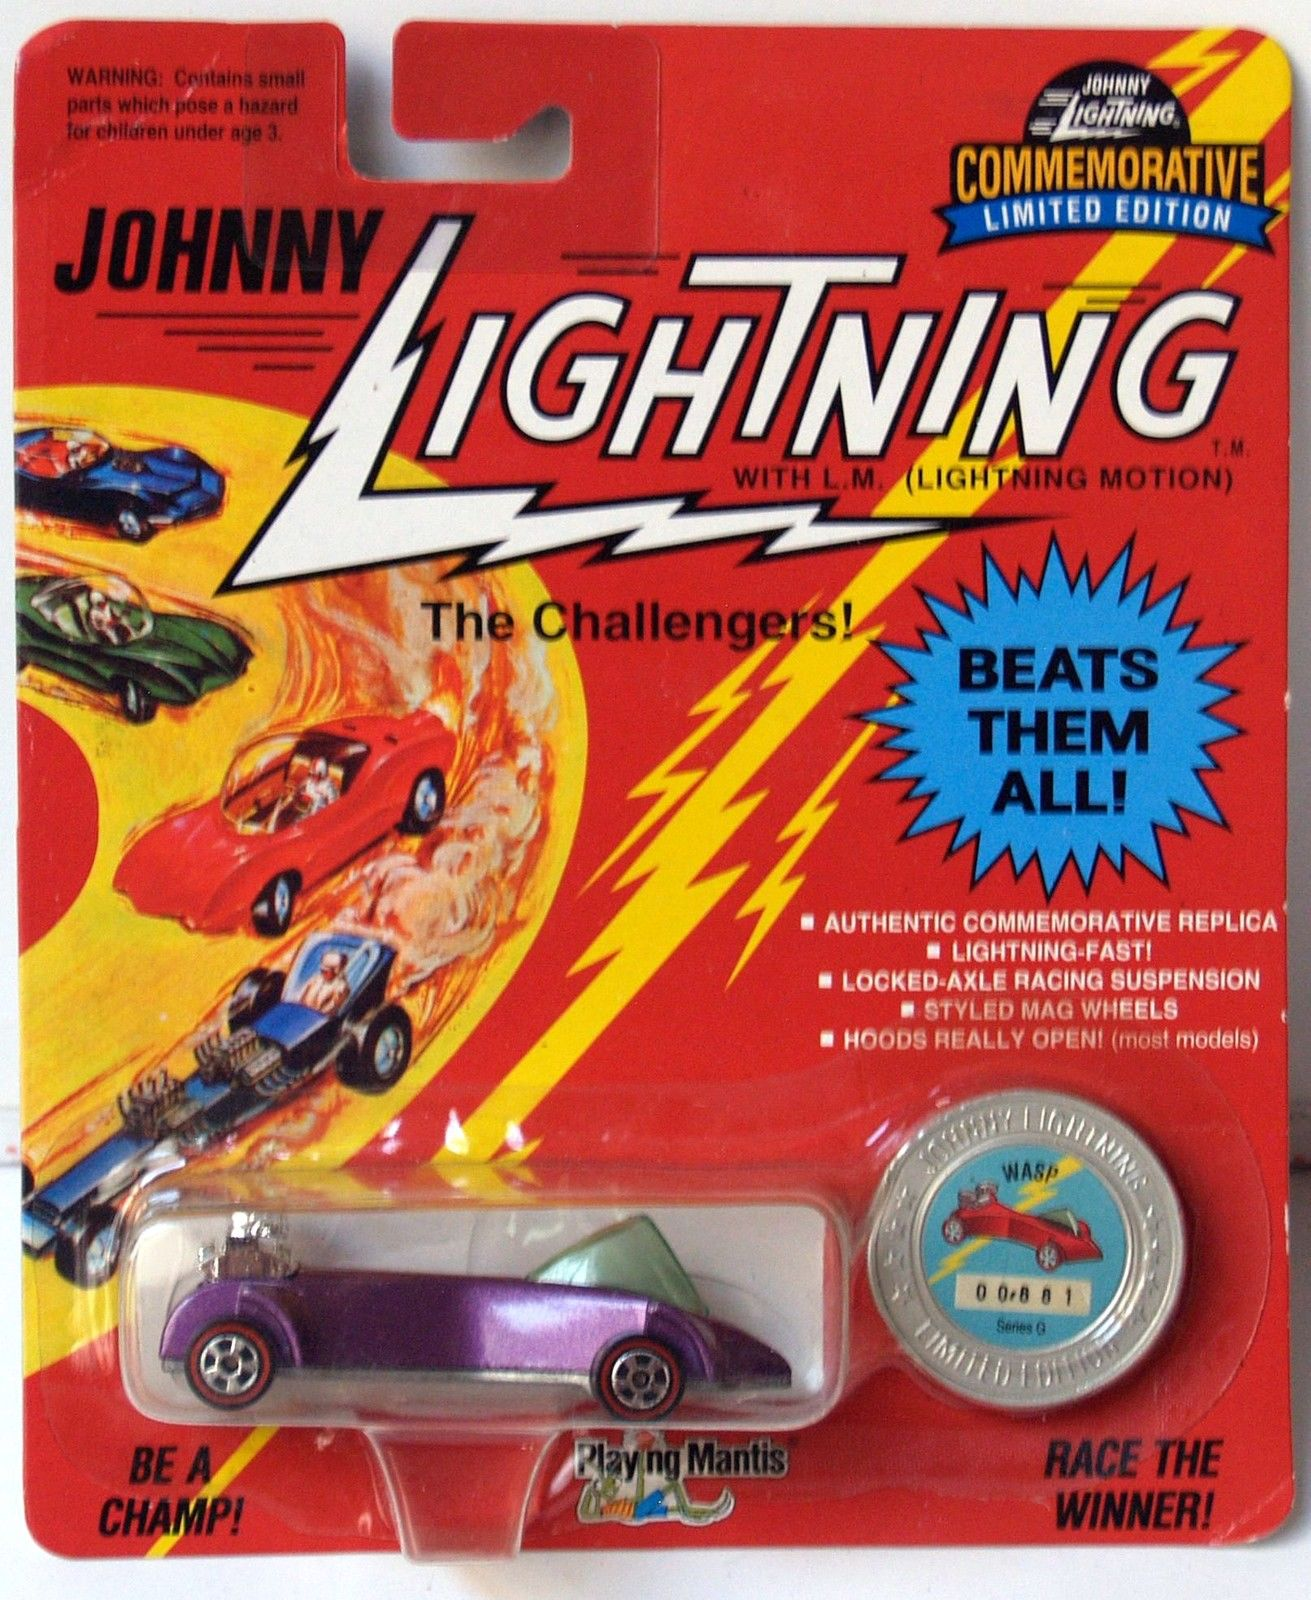 JOHNNY LIGHTNING COMMEMORATIVE - PURPLE WASP - SERIES G